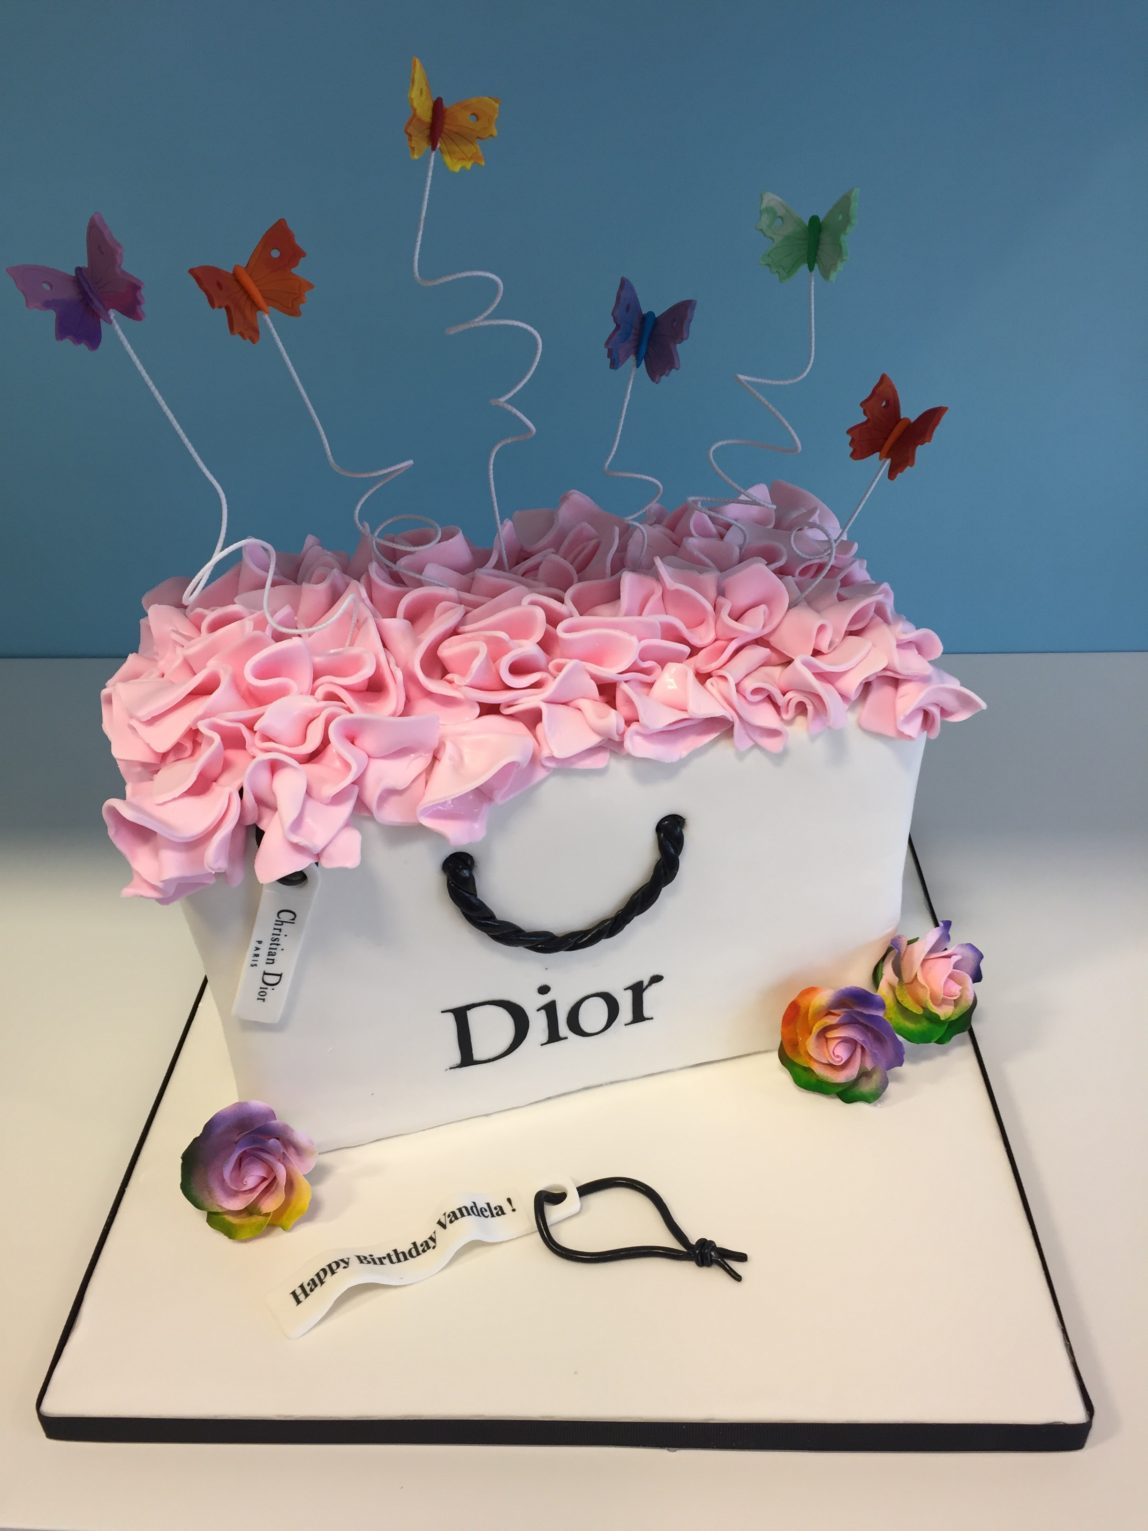 Christian Dior Shopping Bag Millers Bakery